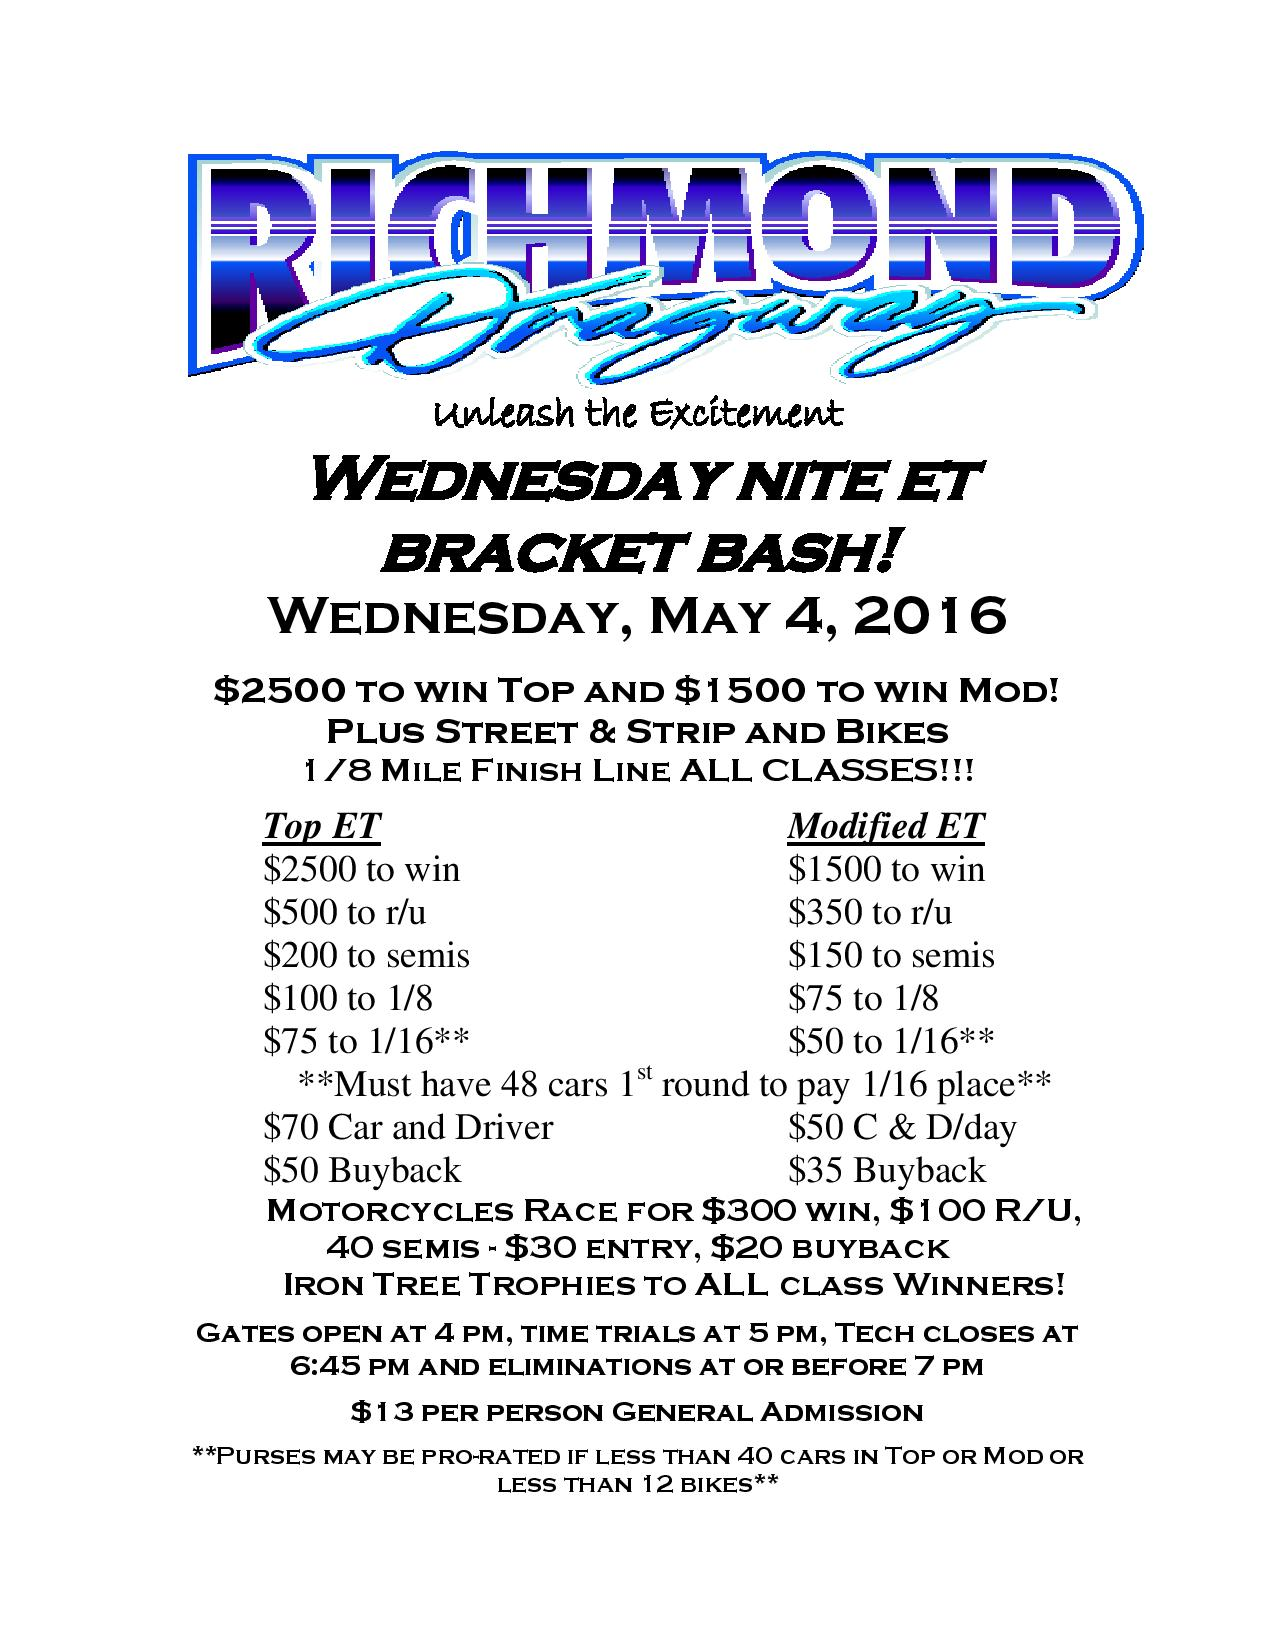 THIS WEEK: Event POSTPONED to 5/11 – Wednesday Nite ET Bracket Bash – NO RACING this Weekend thumbnail